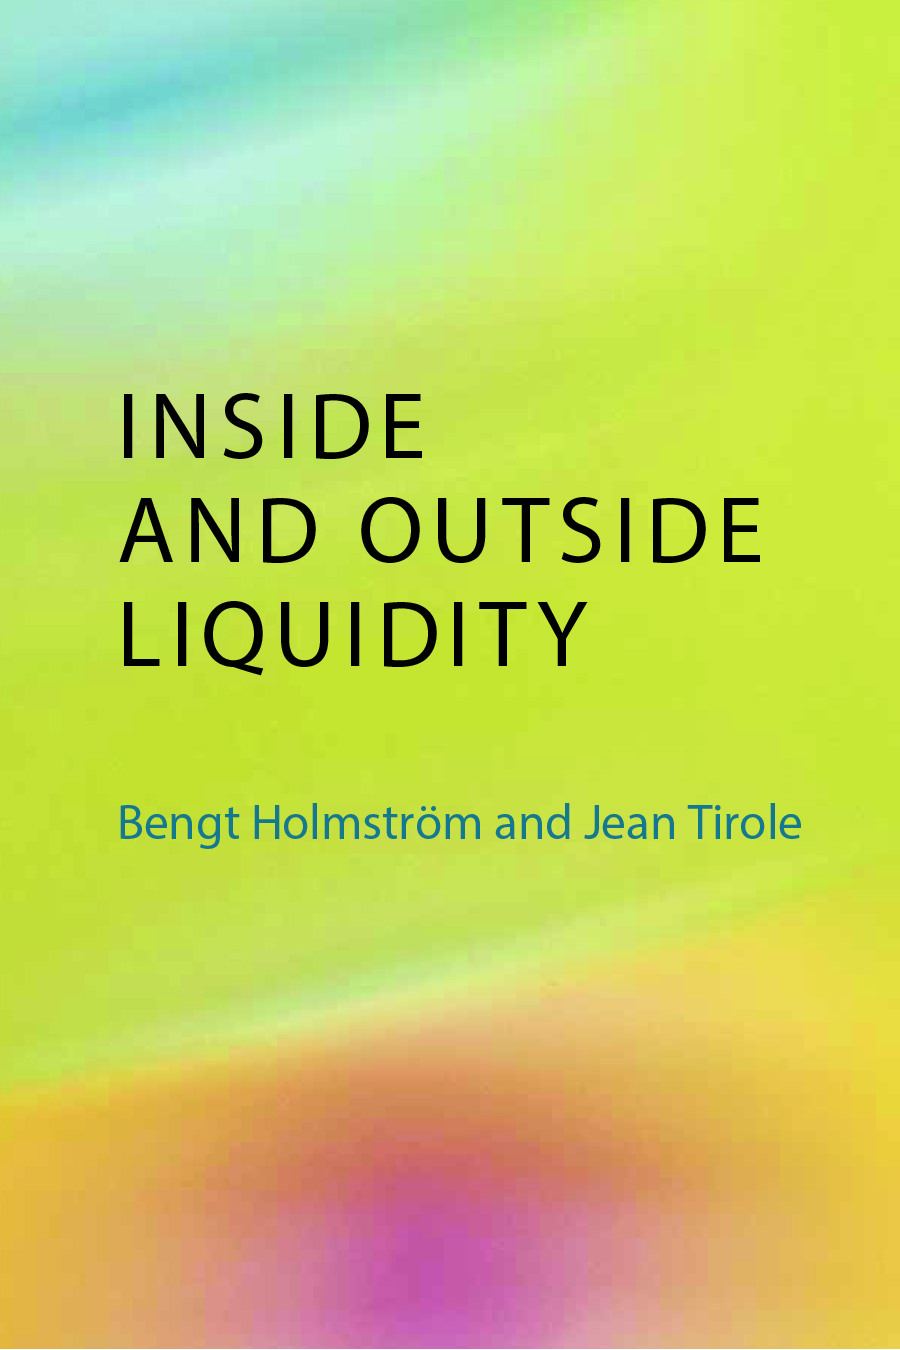 Inside and outside liquidity